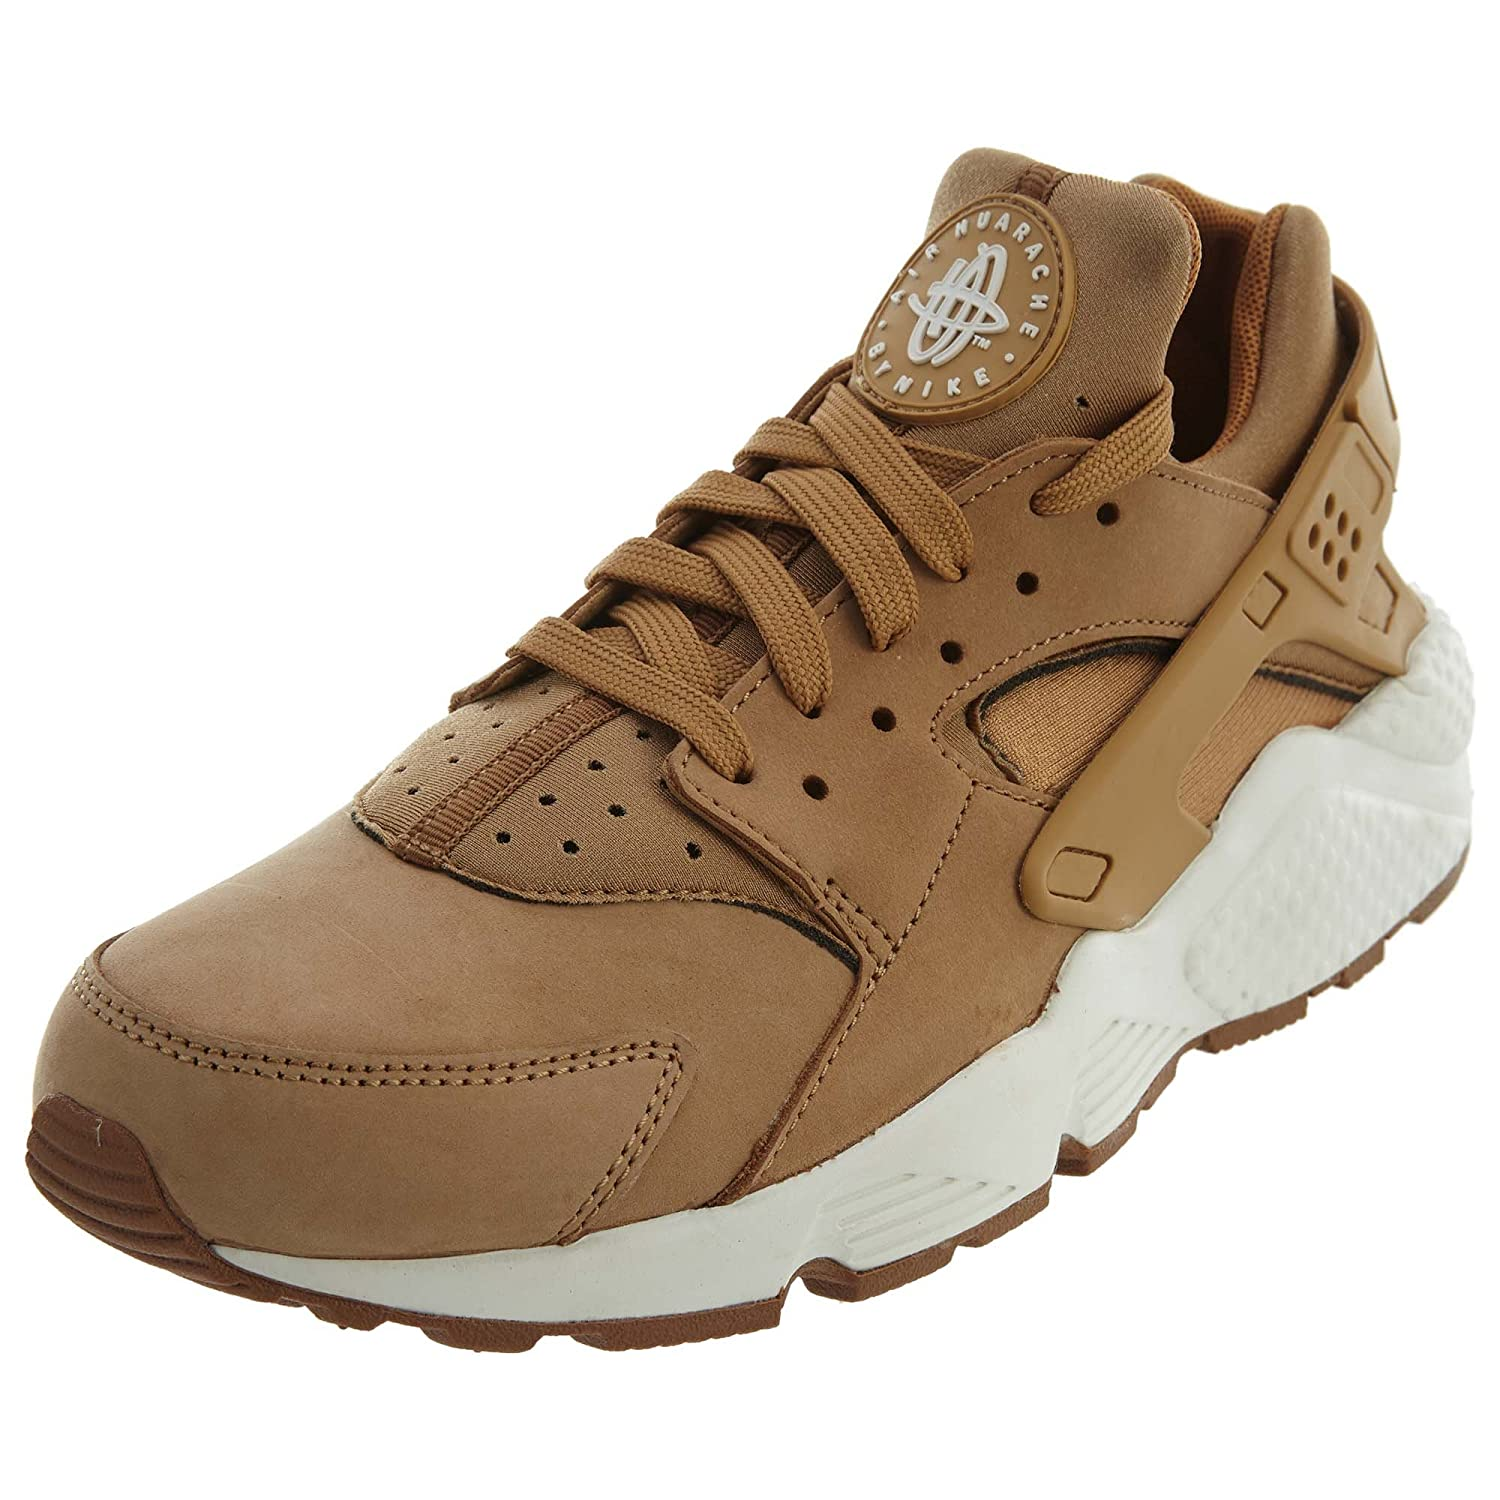 wholesale dealer b1e50 50de2 NIKE Air Huarache, Mens Sneakers